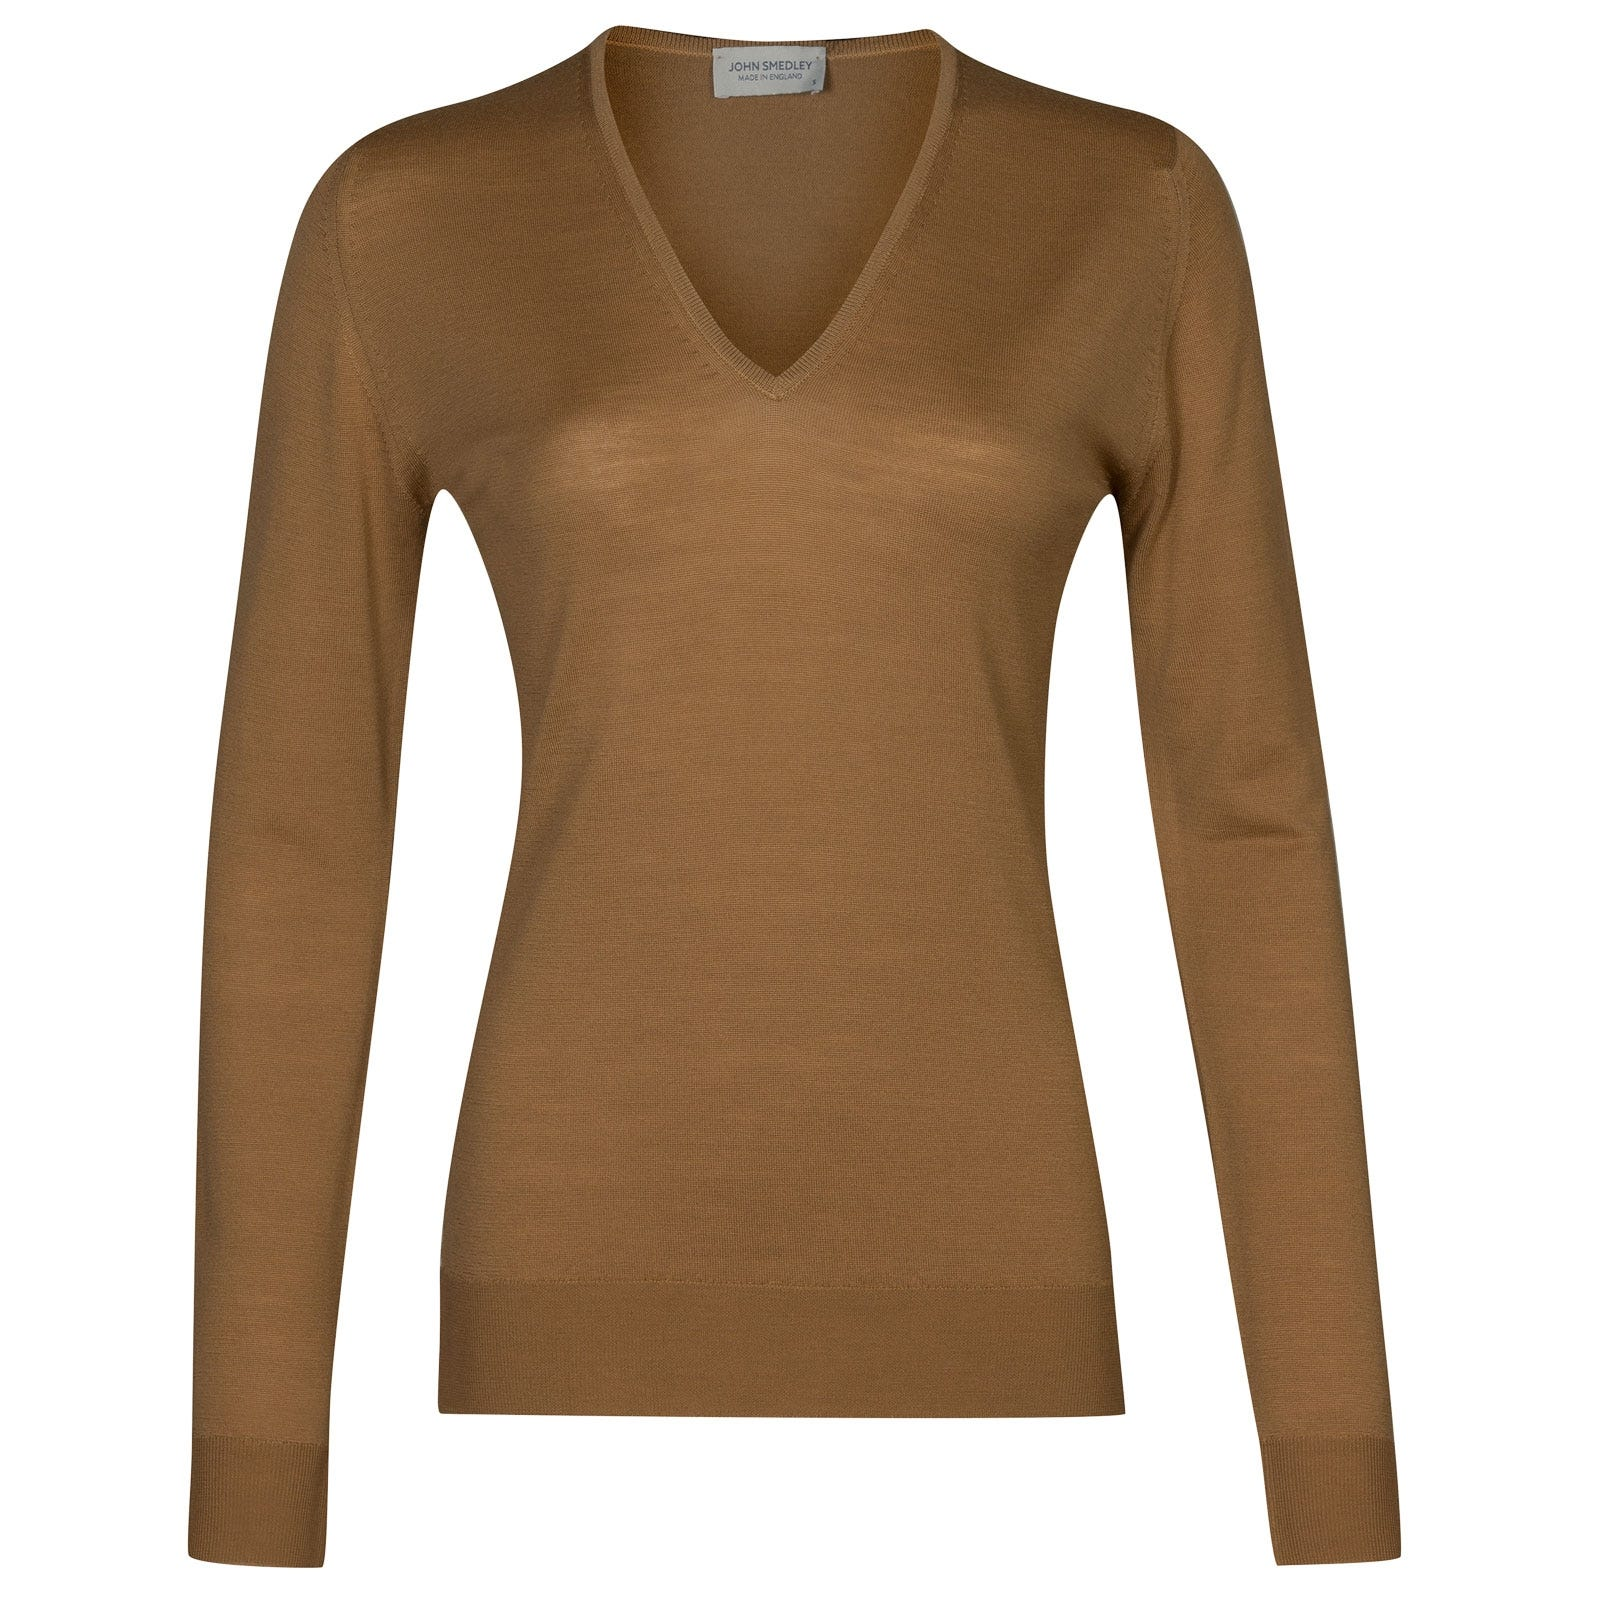 John Smedley Orchid in Camel Sweater-LGE